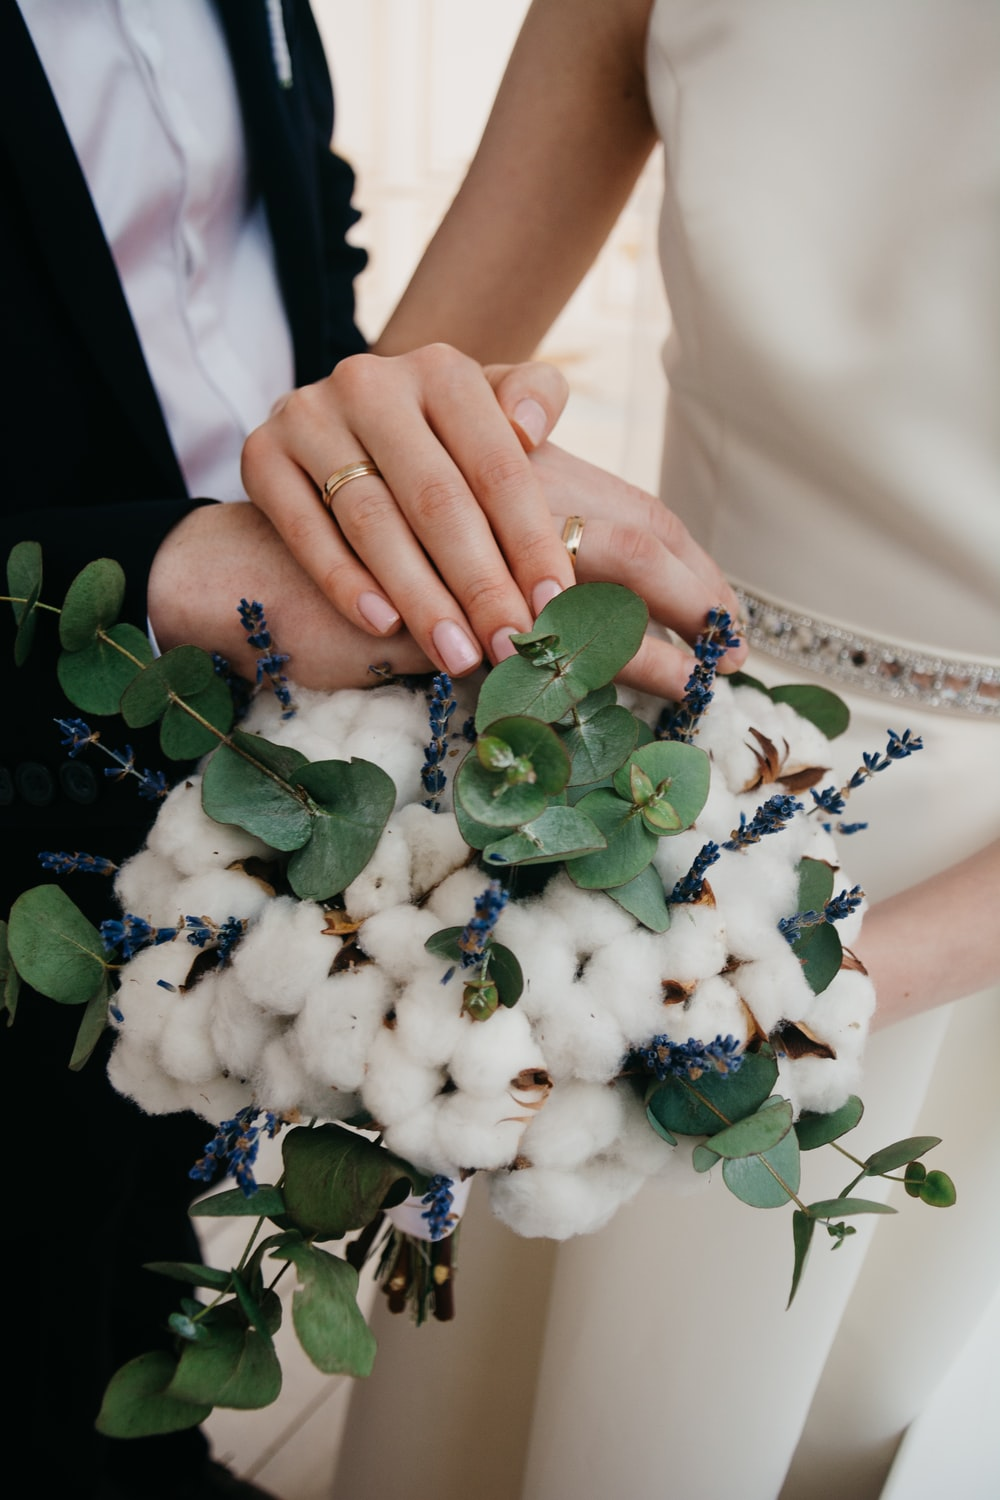 20 wedding pictures images download free photos on unsplash wedding pictures junglespirit Images